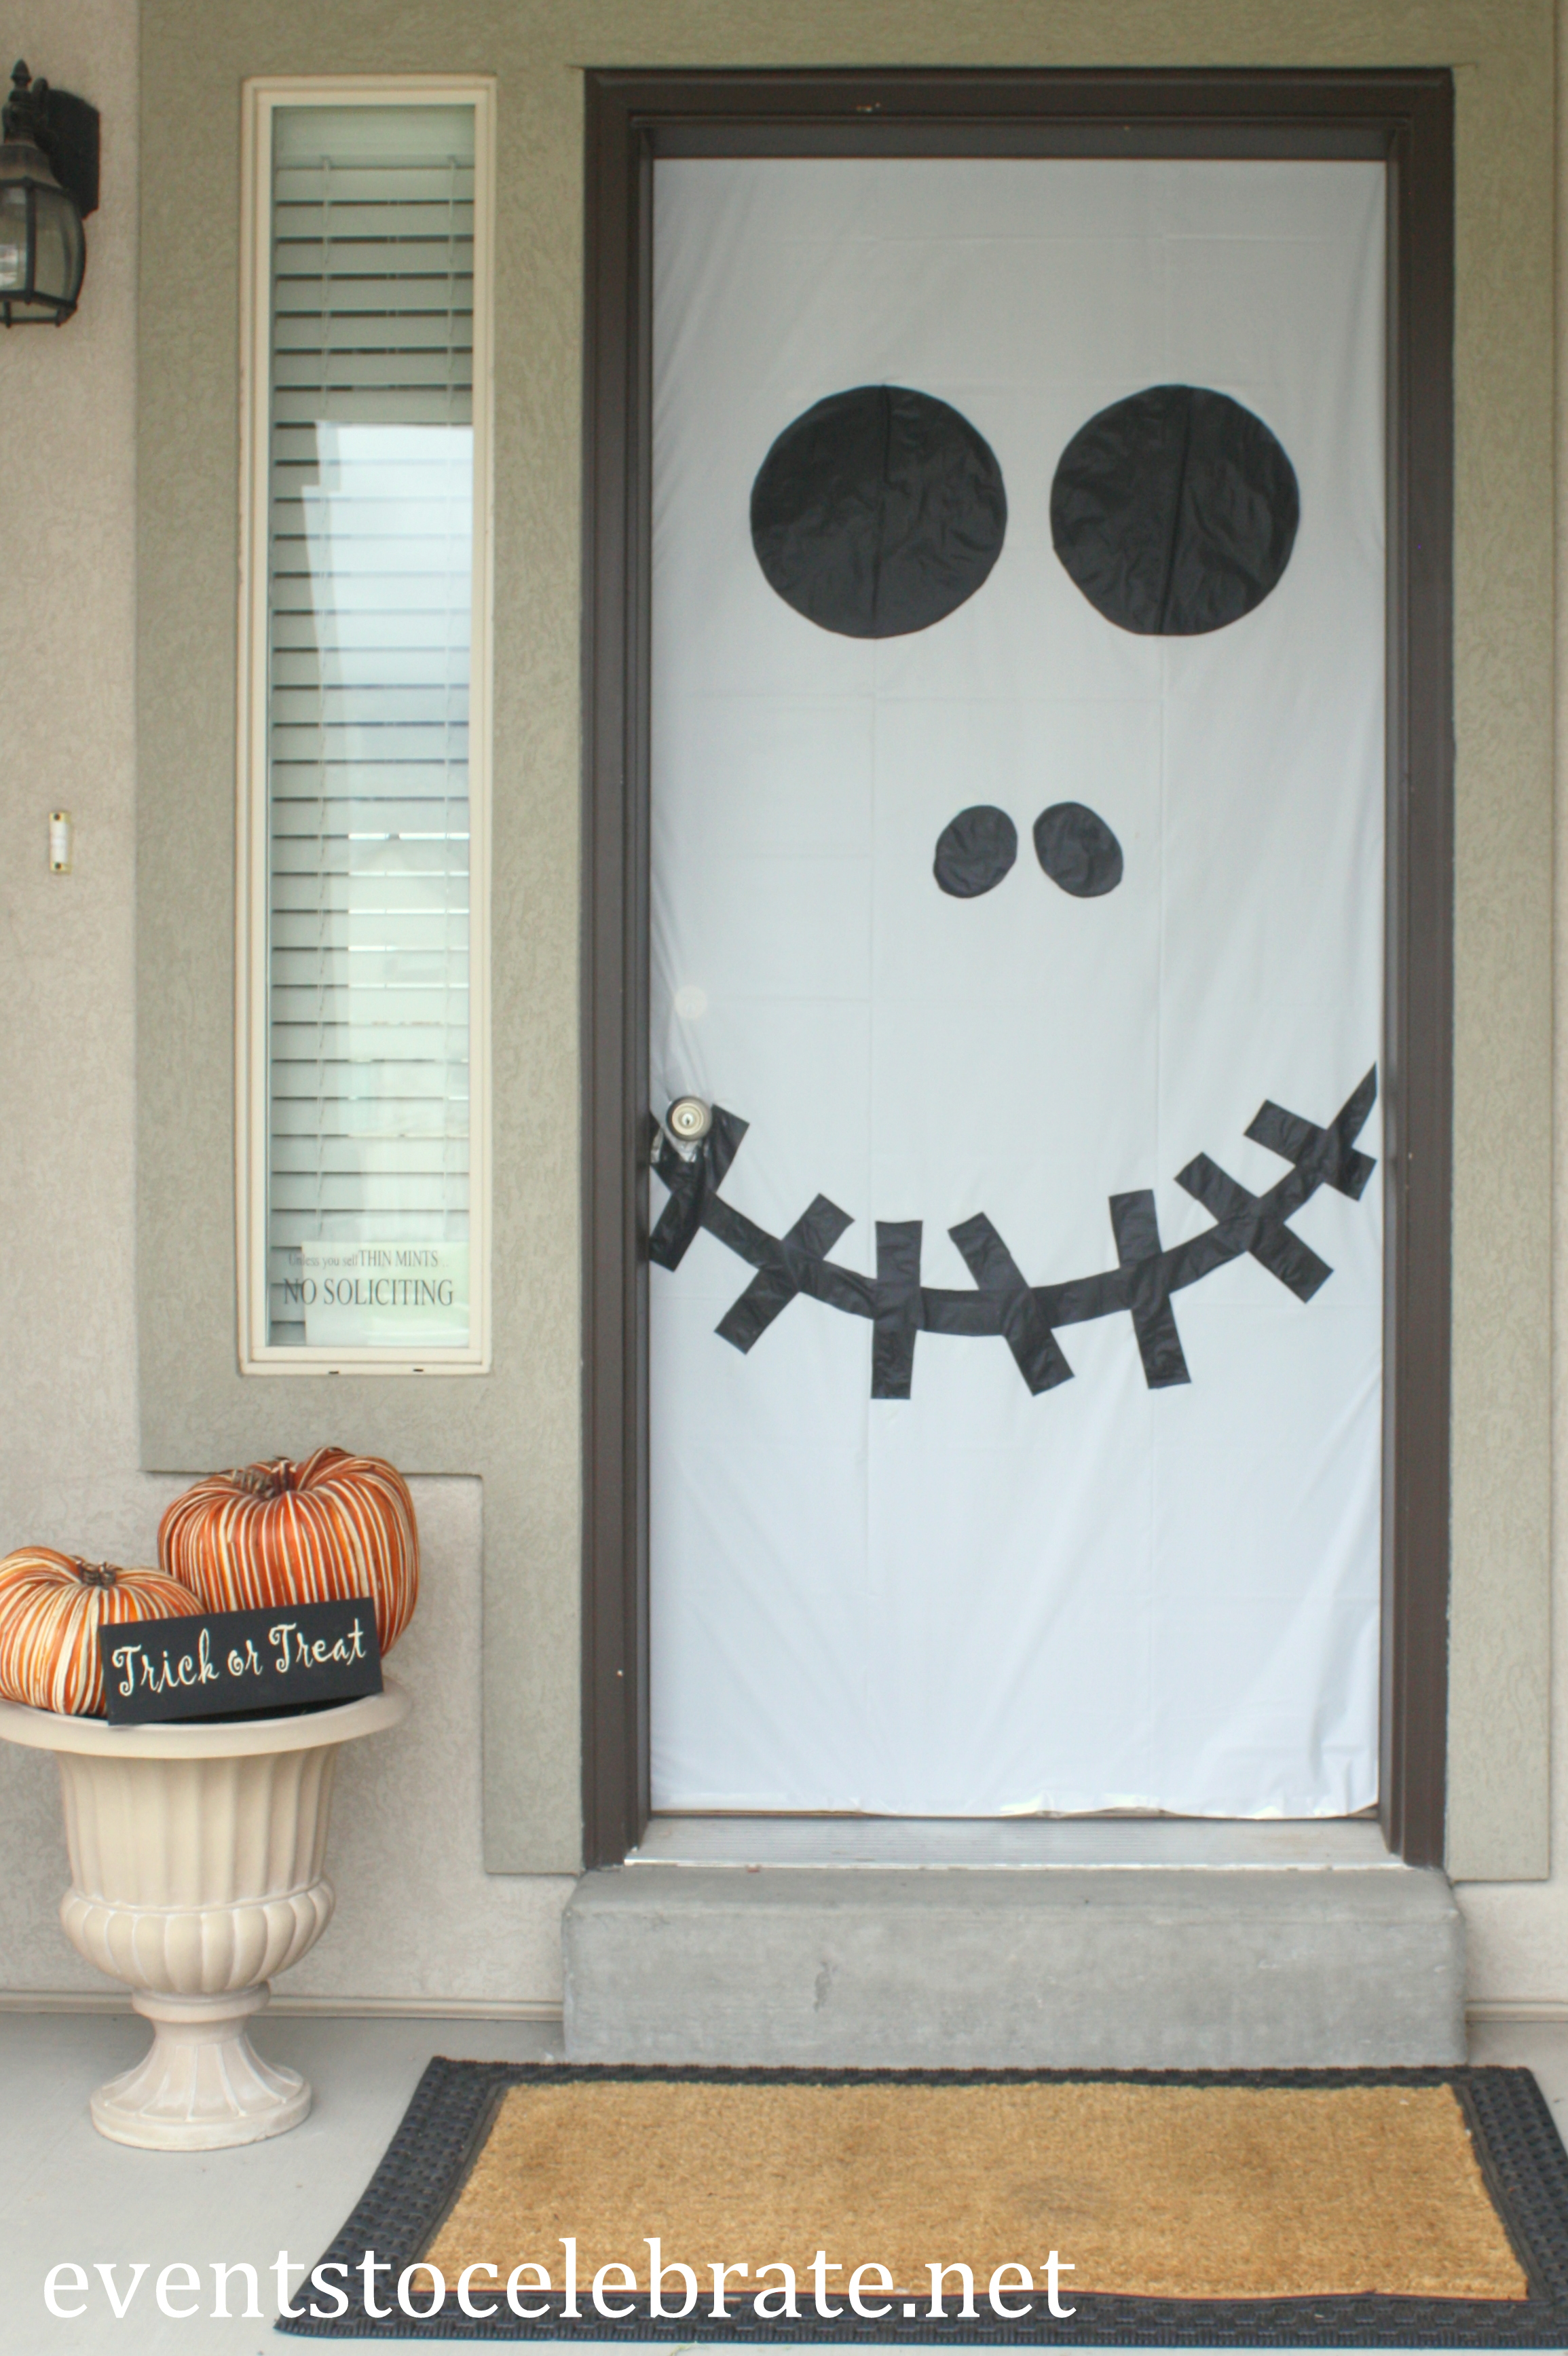 Halloween Door Decoration & Halloween Door \u0026 Window Decorations - events to CELEBRATE!